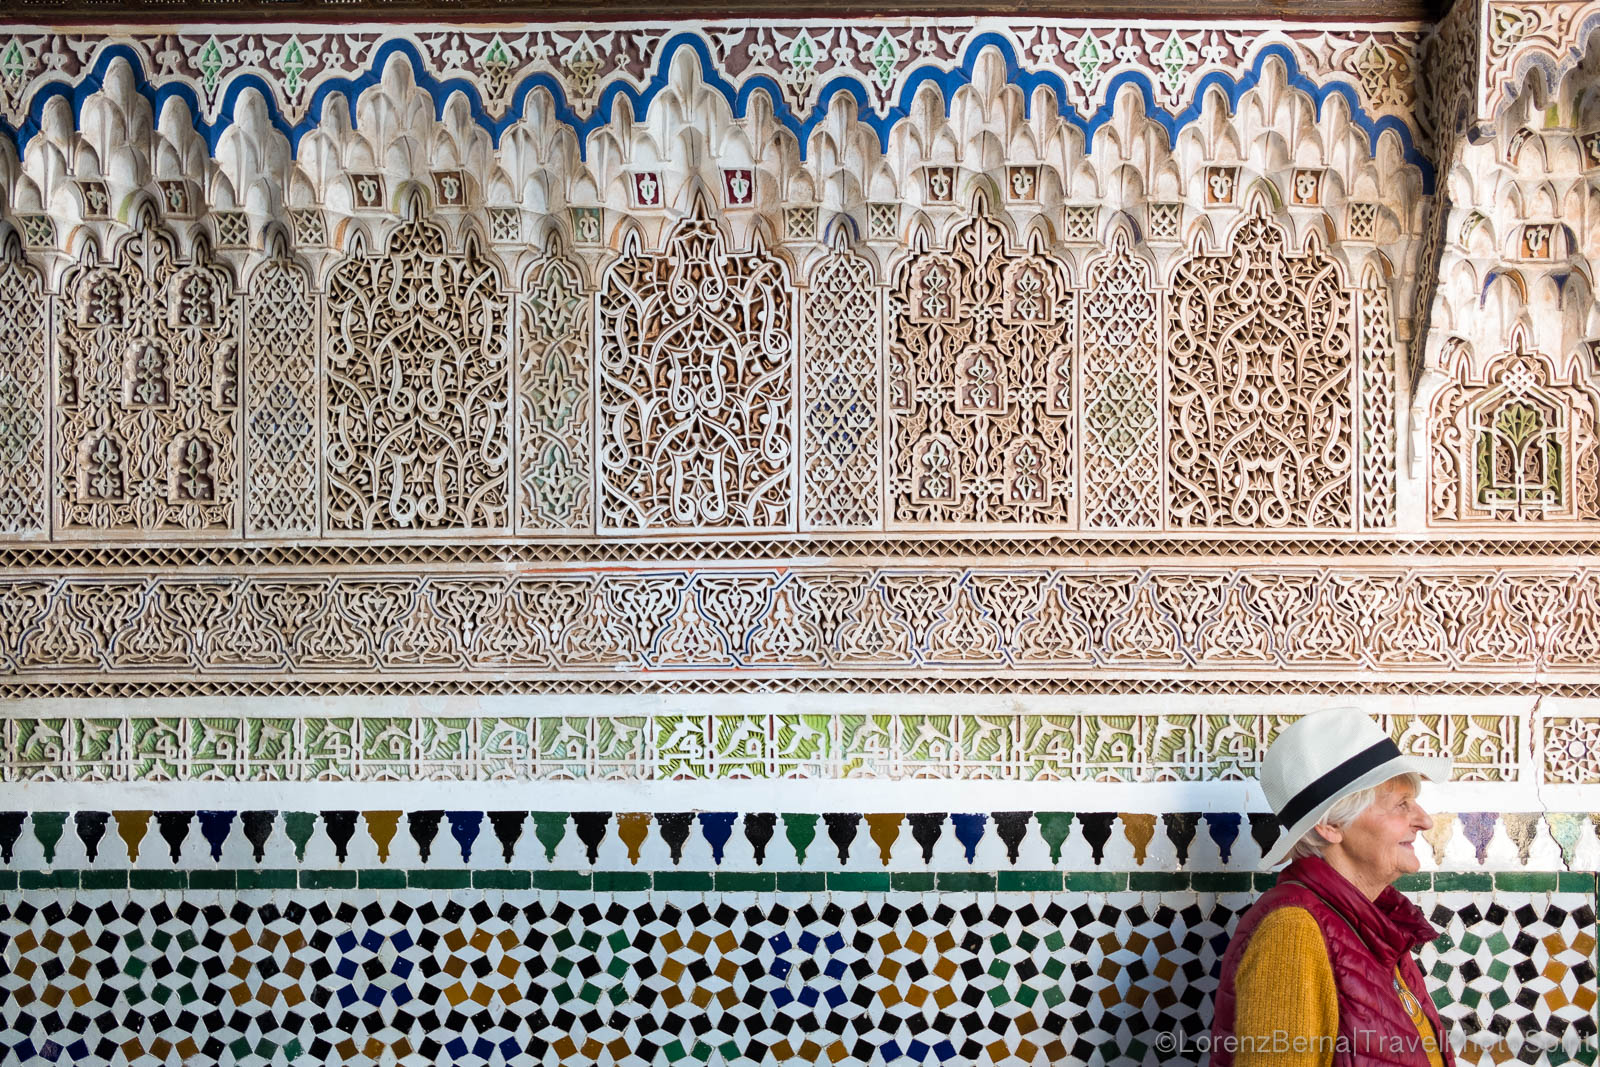 A finely worked wall inside the Bahia palace in Marrakech